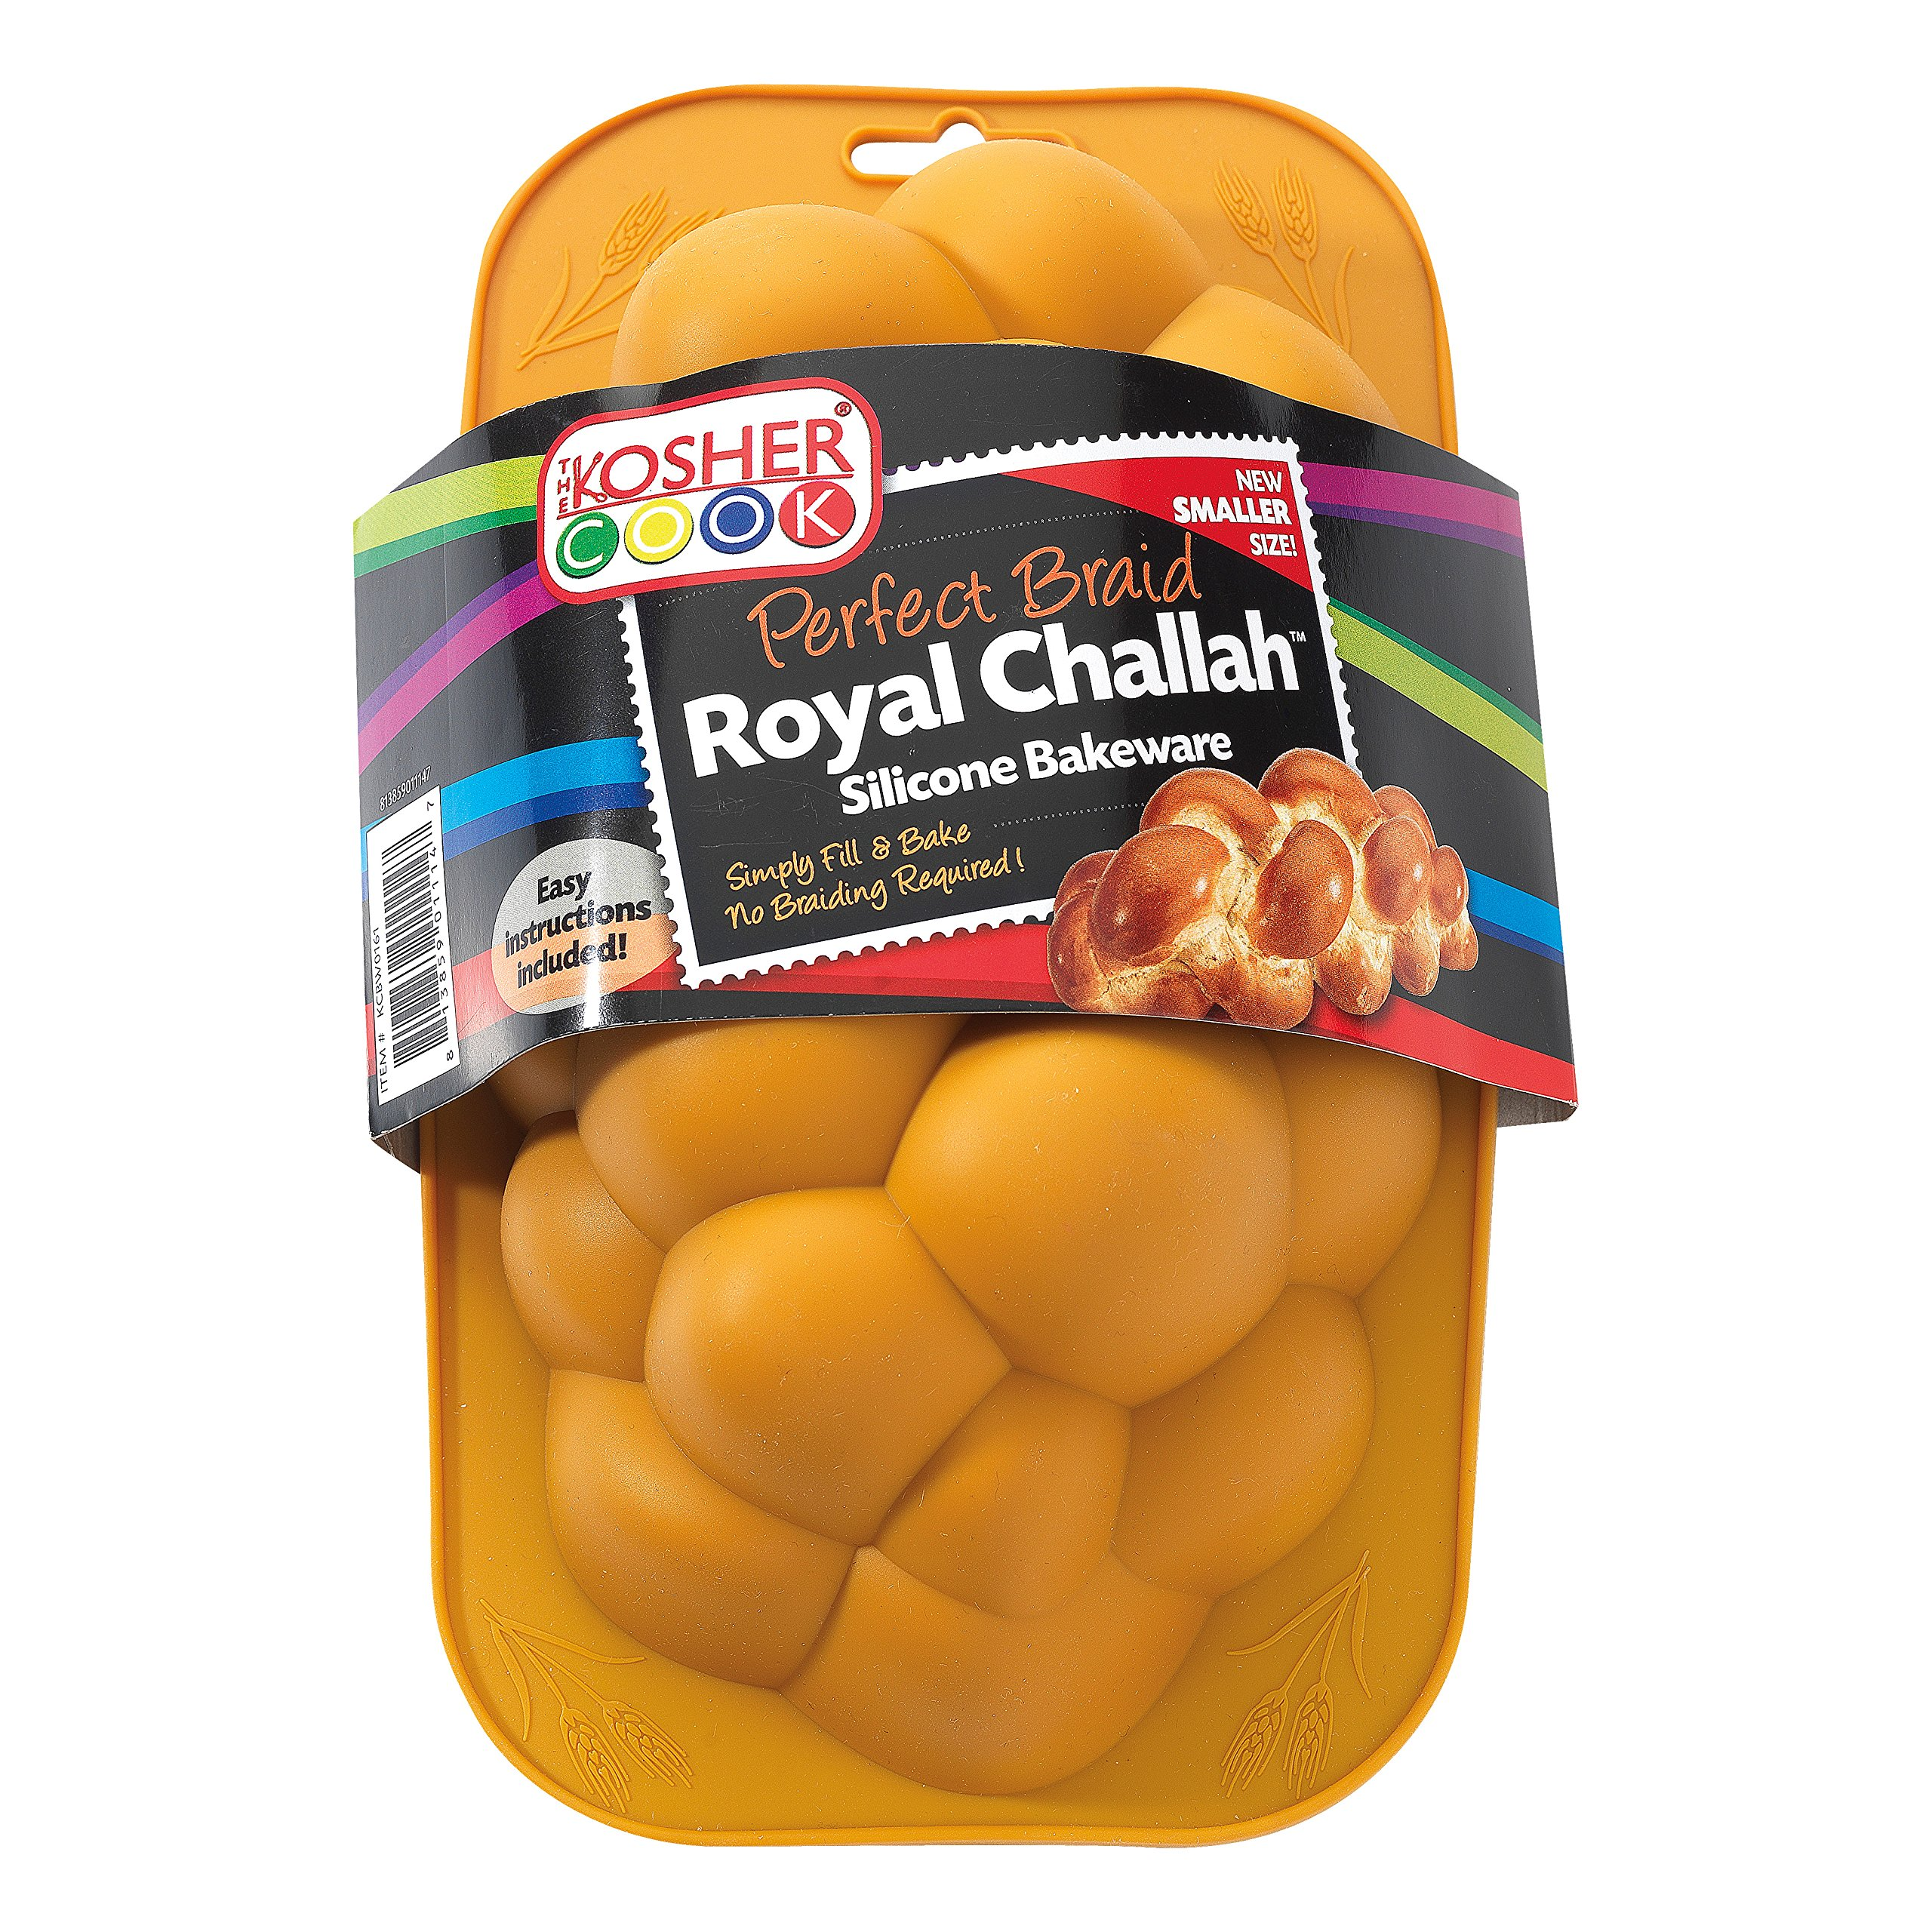 Silicone Braided Challah Pan - Small - Perfect Challah Bread Braid Baking Mold, No Shaping Required - Small - By The Kosher Cook by The Kosher Cook